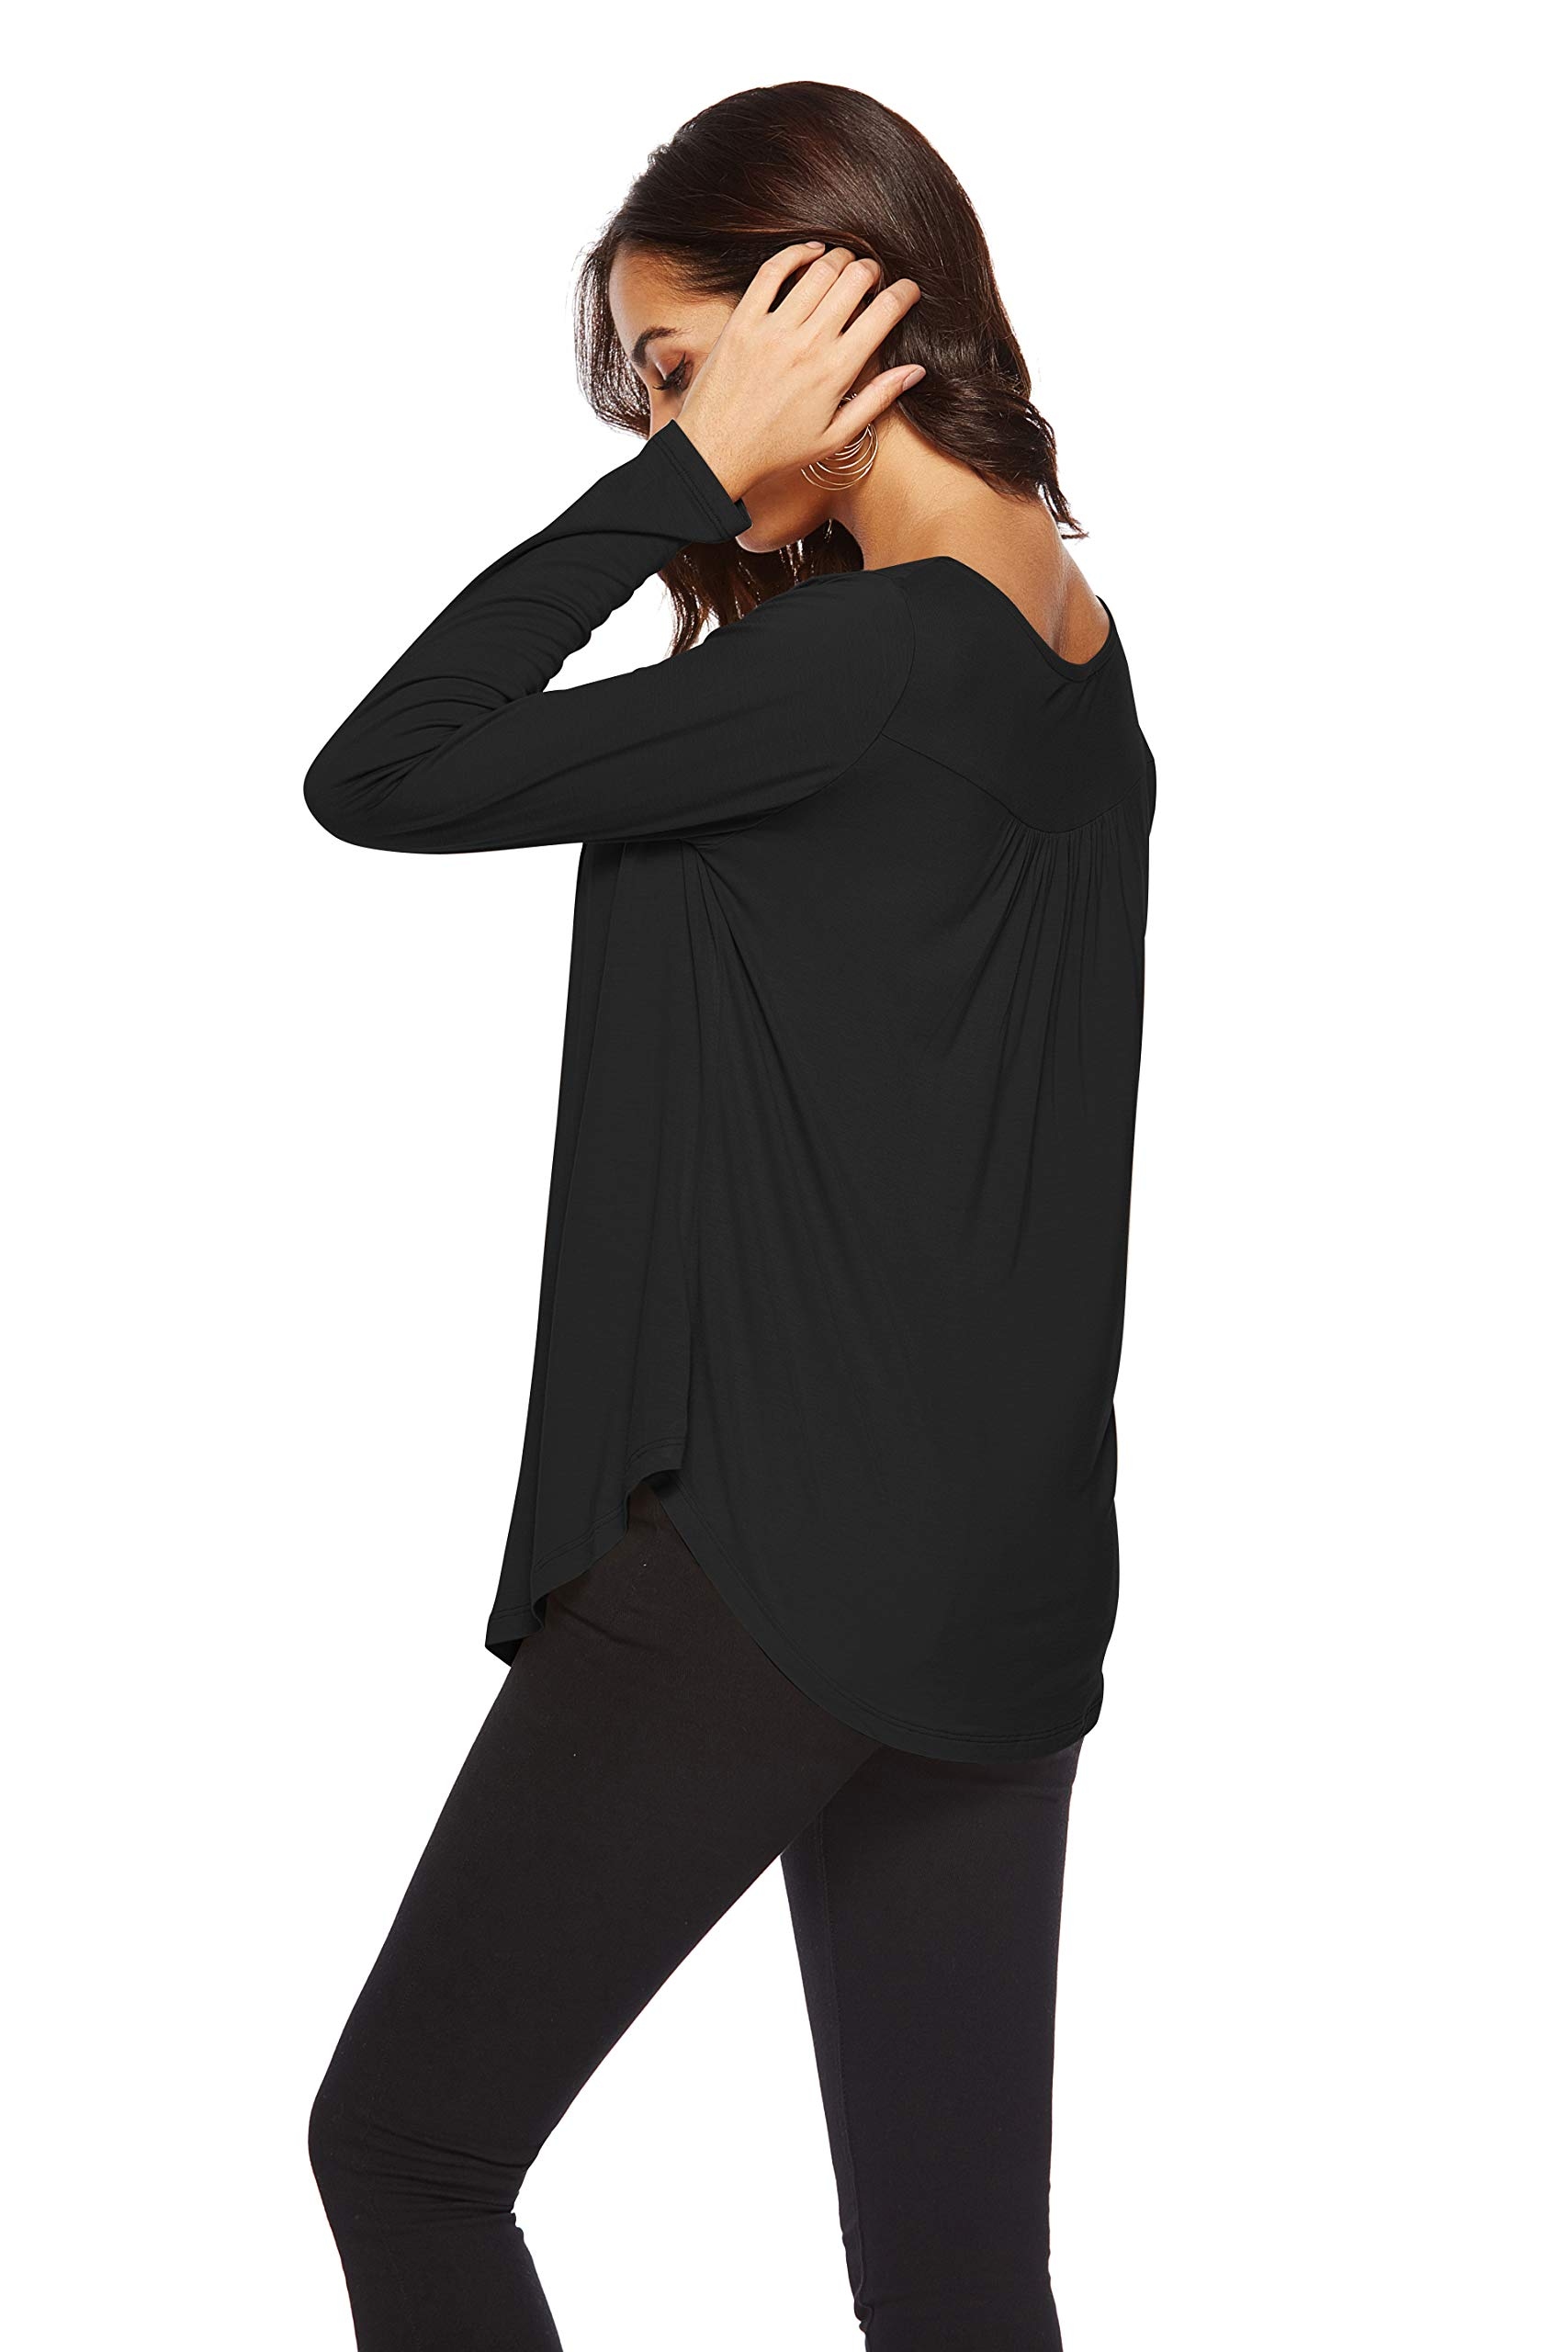 Eanklosco Womens Tops V Neck T-Shirts Swing Ruffle Blouses Button up Tunic Casual Flowy Long Sleeve (Black, XL)